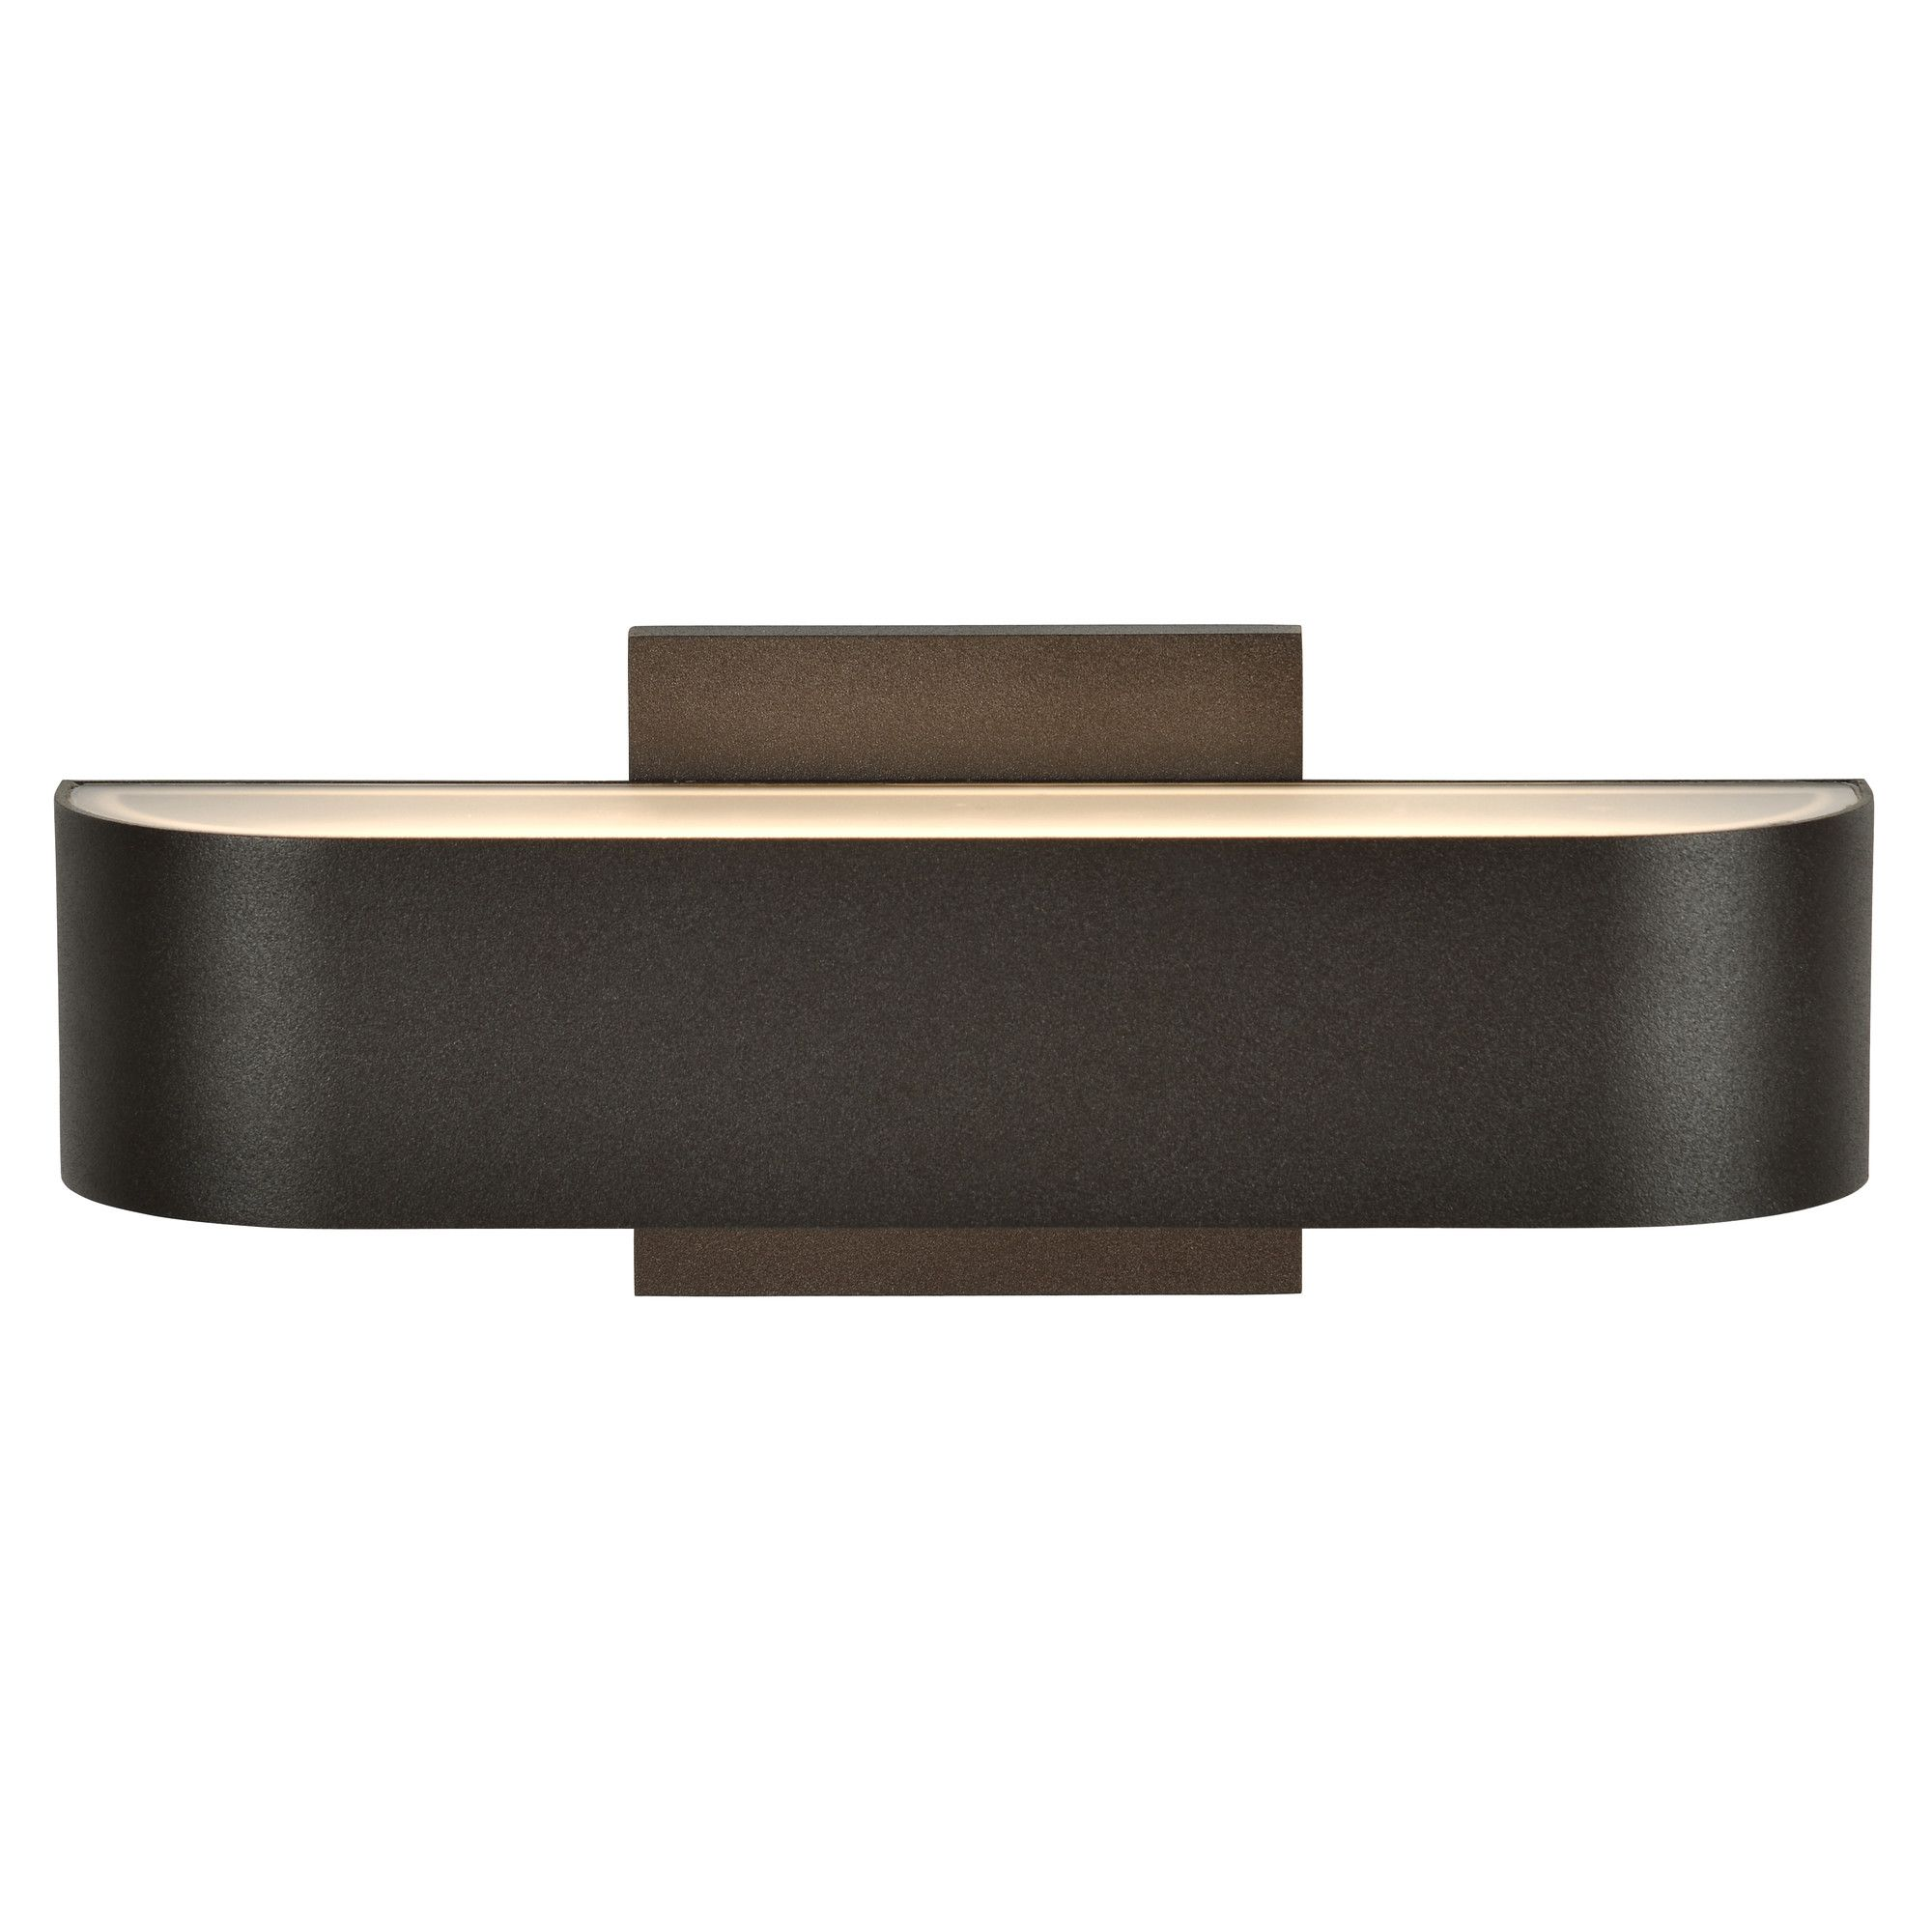 Montreal light outdoor sconce products